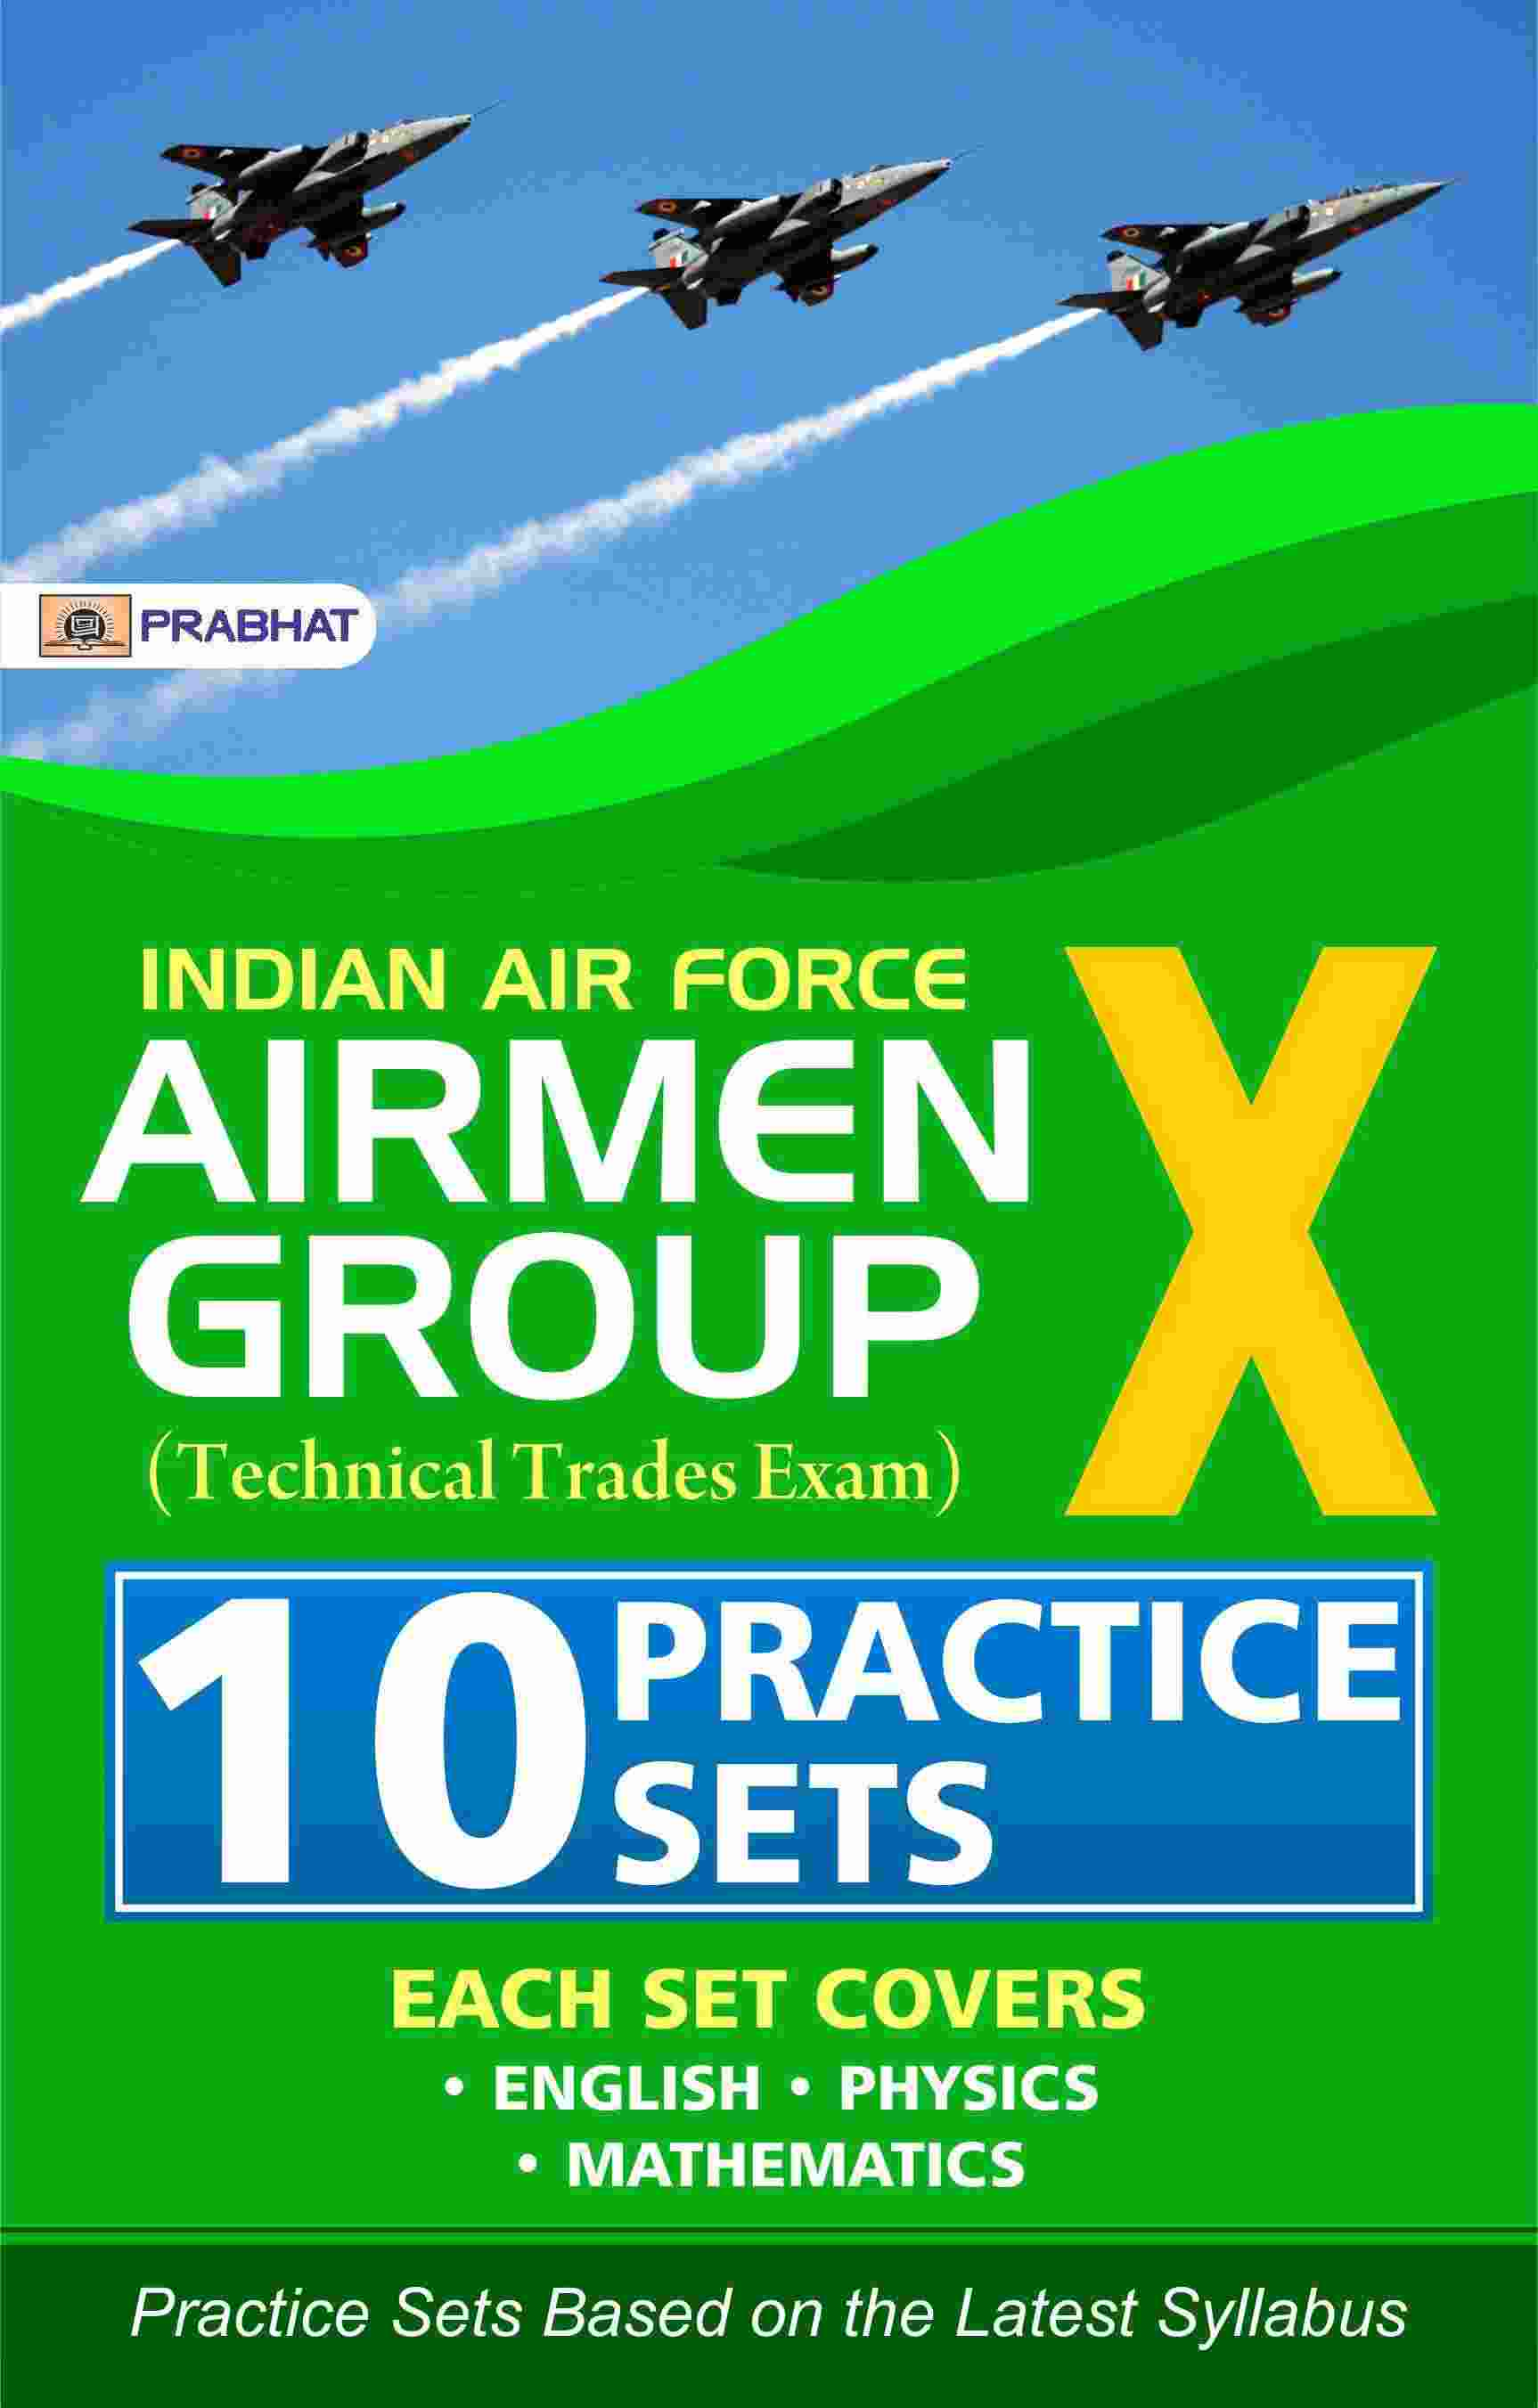 Indian air force Airmen group X (Technical Trades Exam) 10 Practice Se...